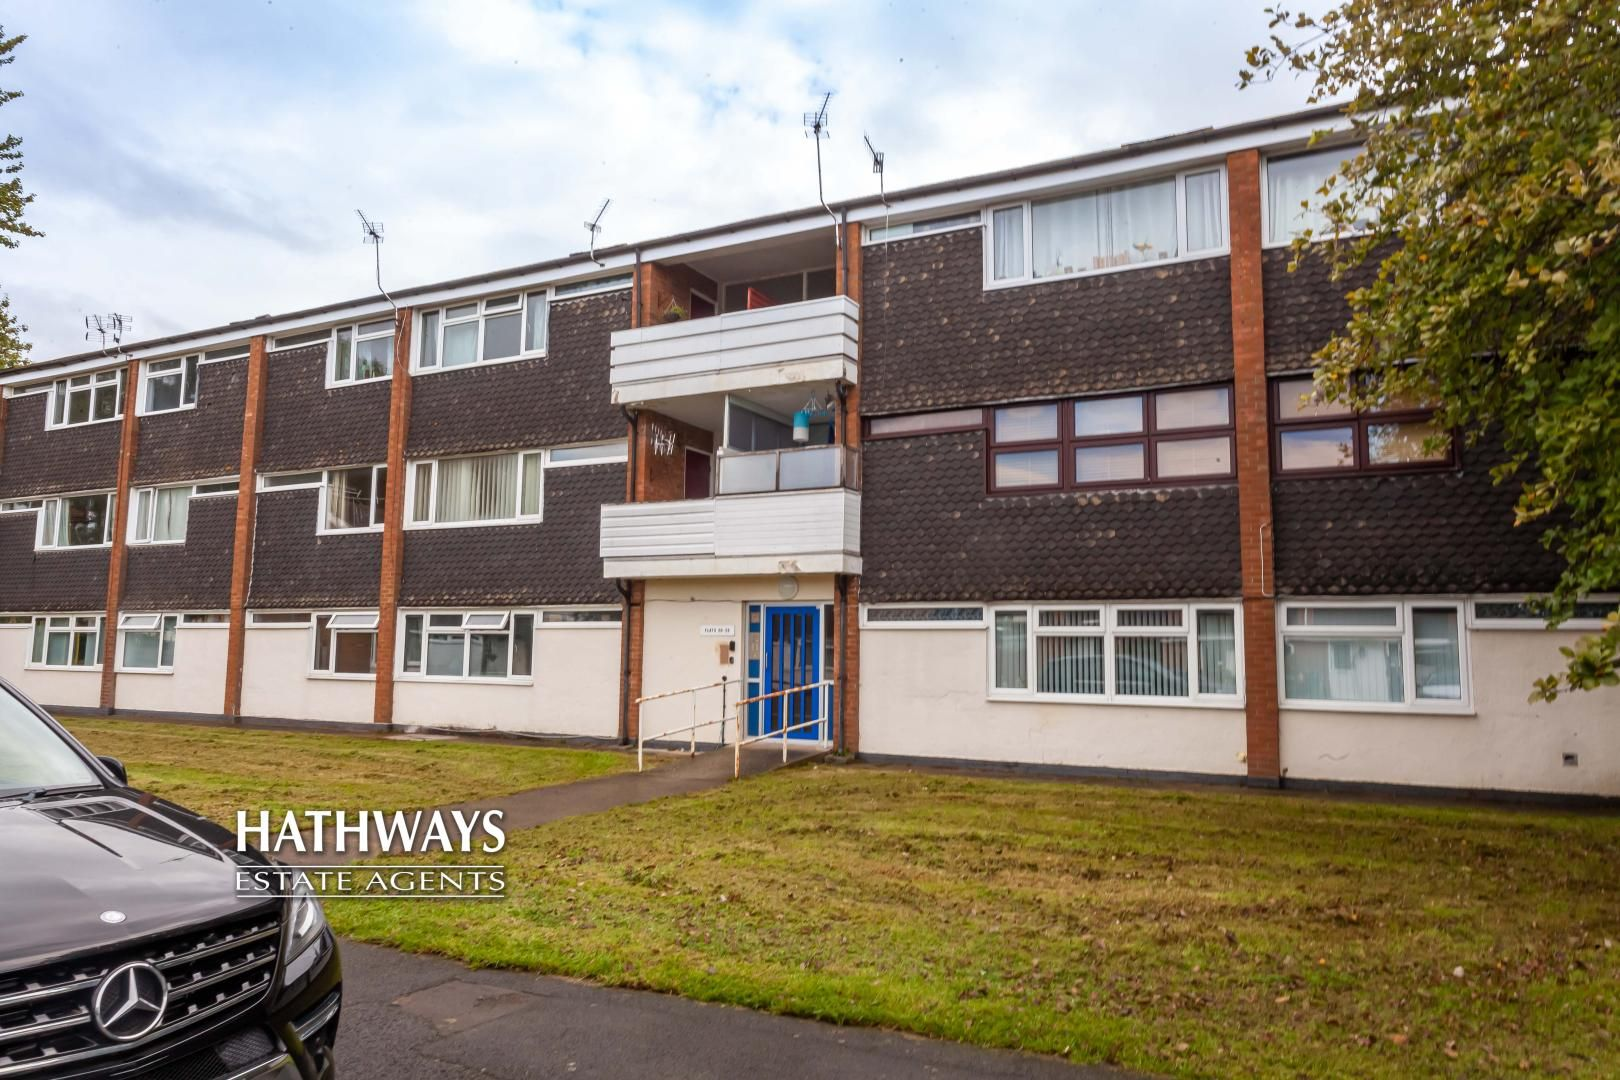 2 bed flat for sale in Longbridge Estate, NP18